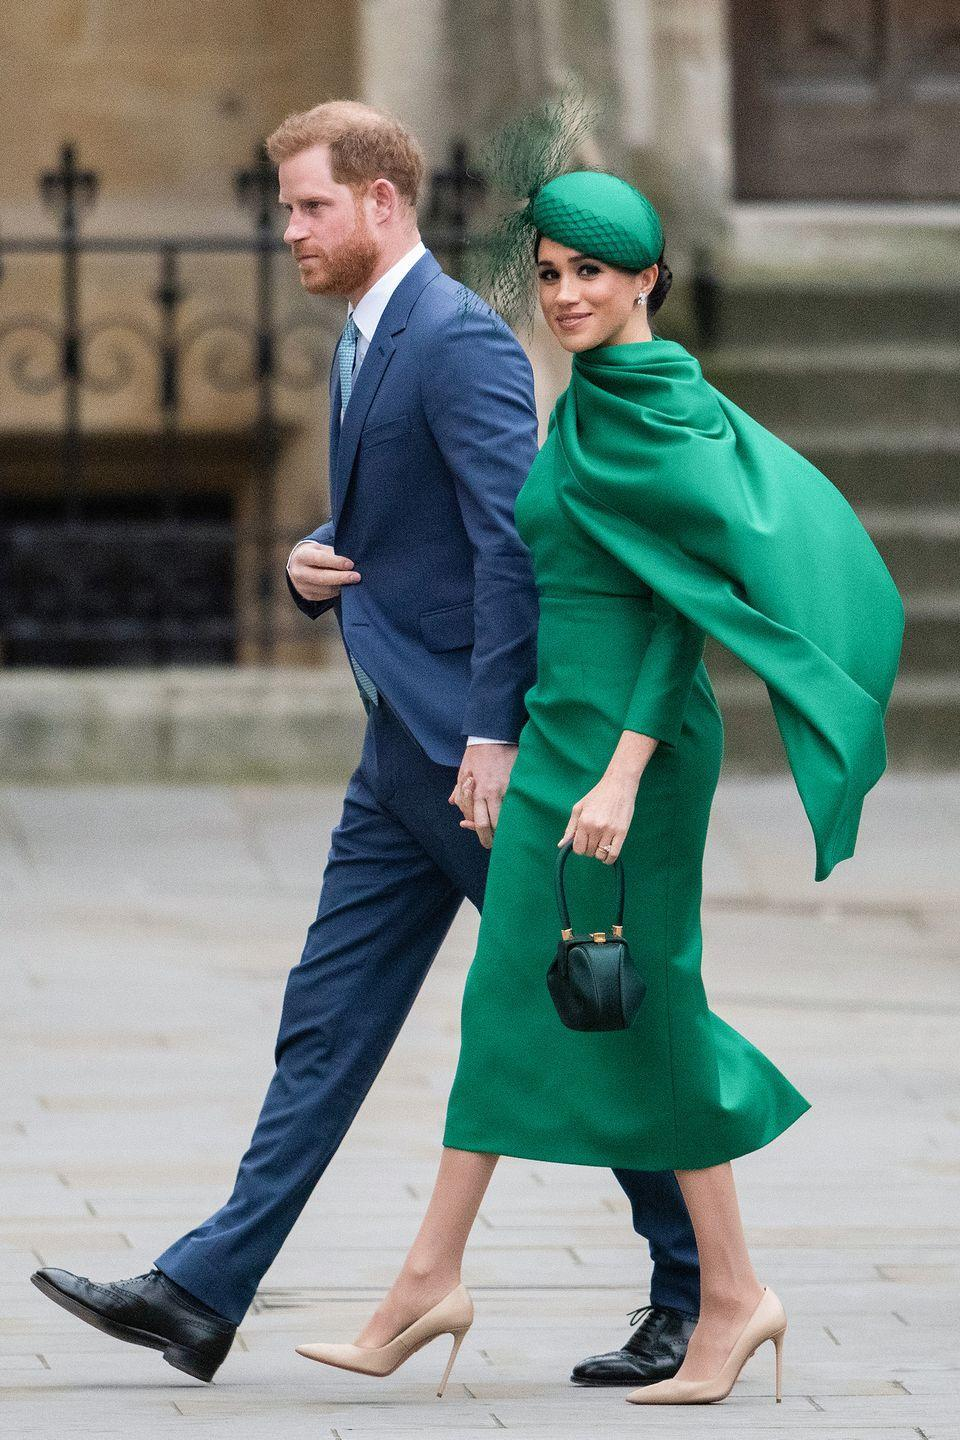 <p>For her last public engagement as a senior royal, Meghan wears an emerald green cape and hat to attend the Commonwealth Day Service.</p>